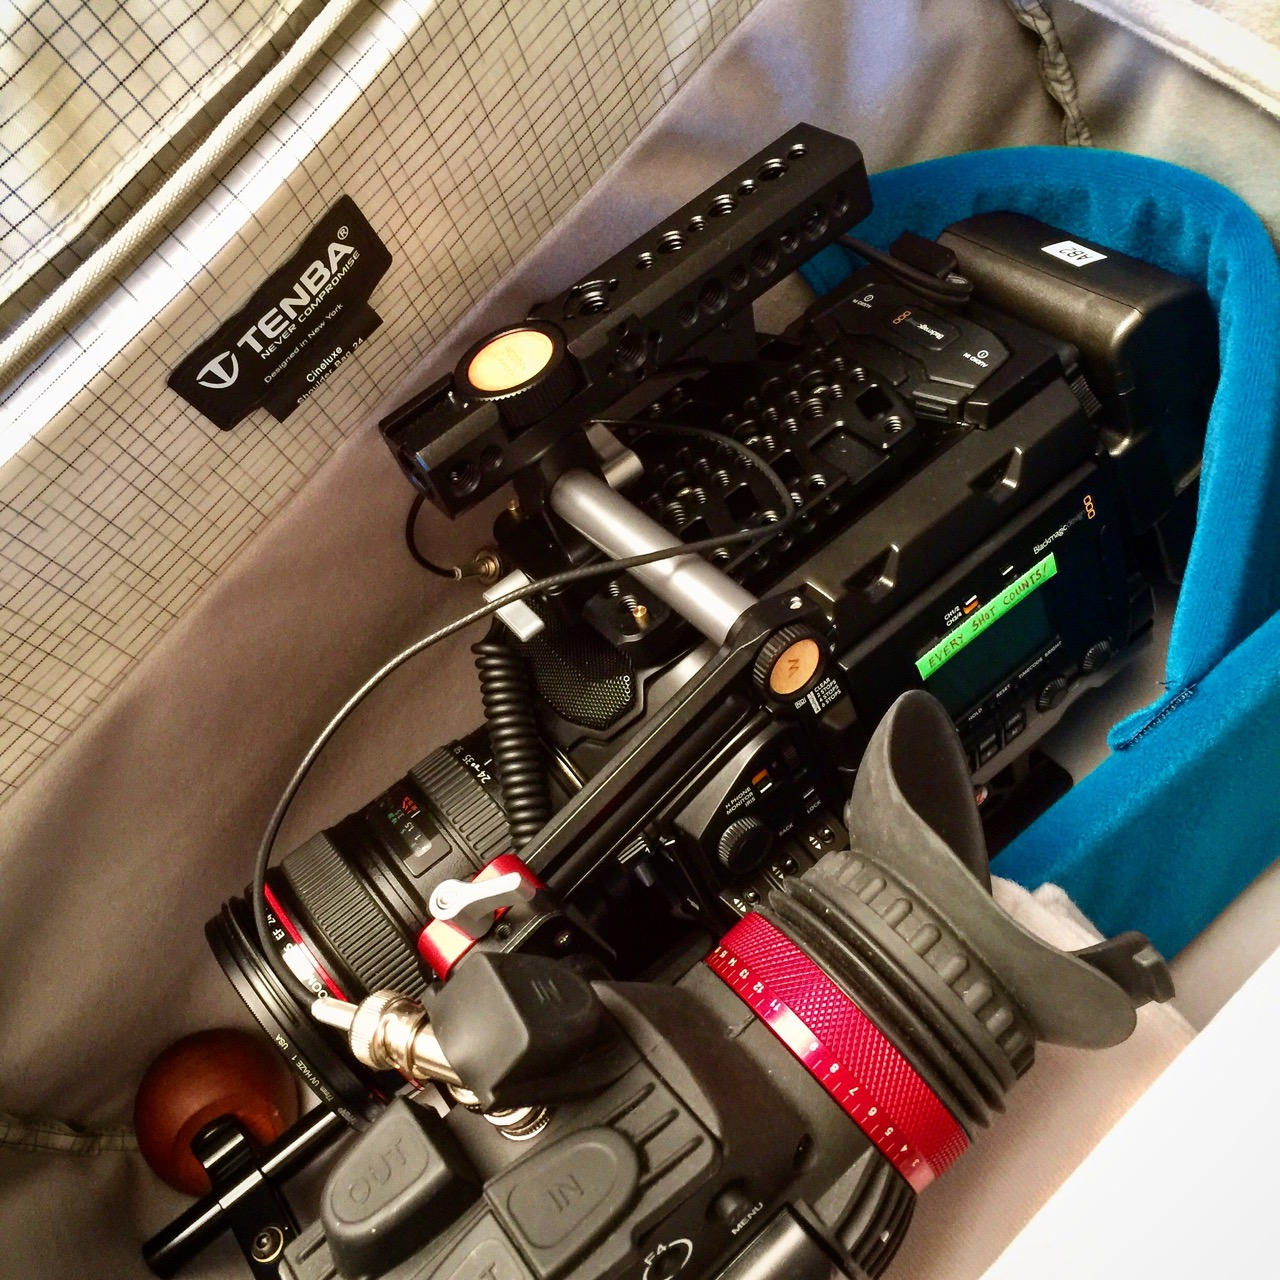 Nice to have a  bag  that holds a rigged camera and accessories. And the  Zacuto  Gratical HD is a joy to use! It makes nailing exposure and focus much easier.